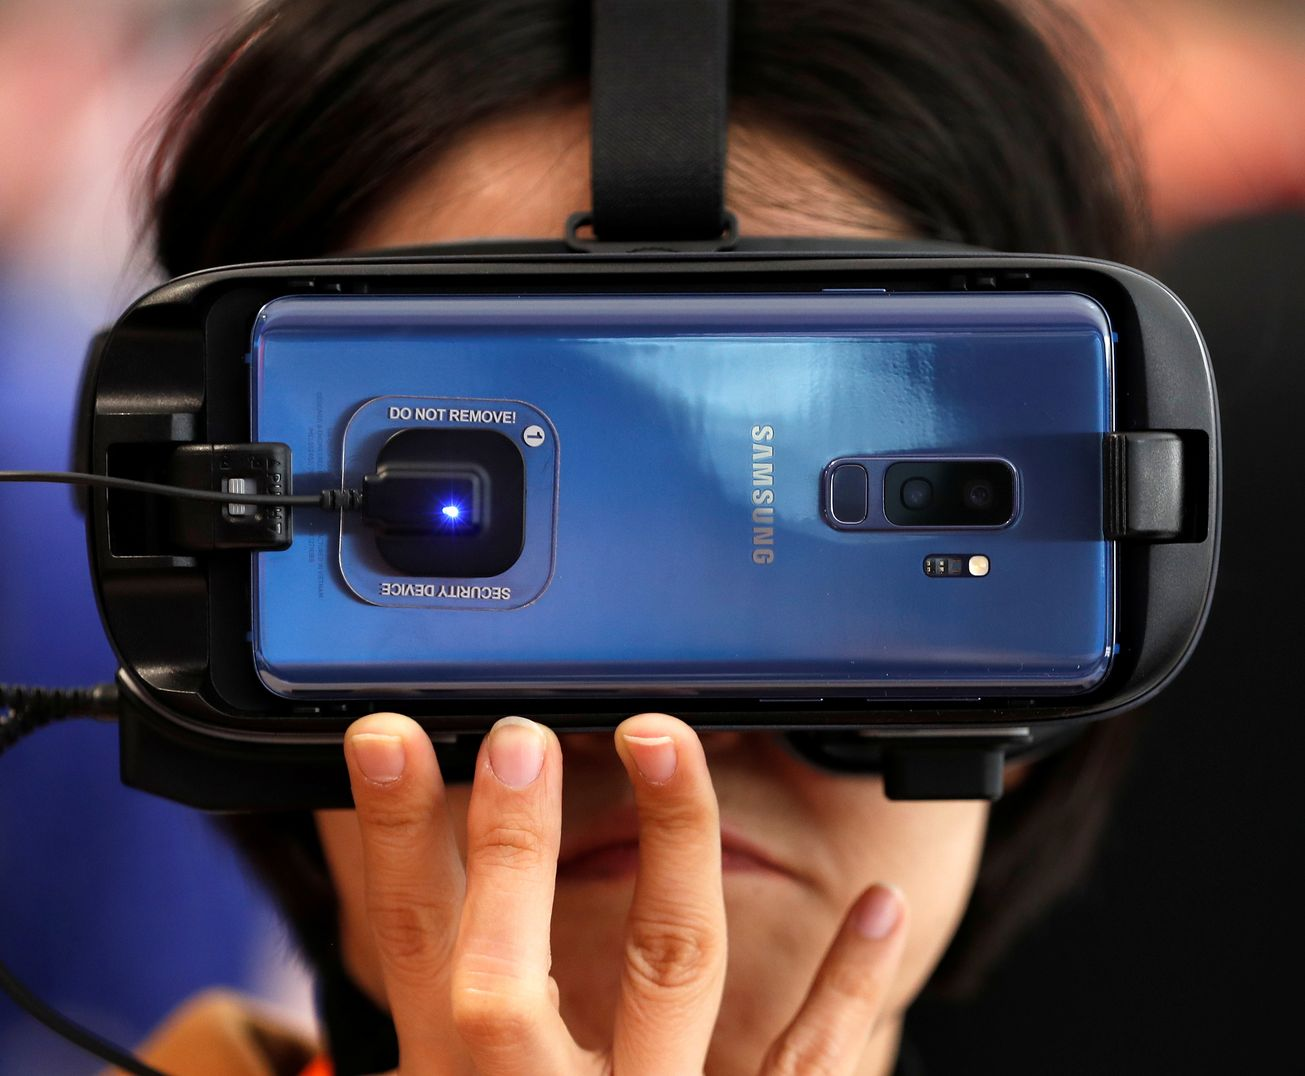 Forget 5G: Samsung Is Already Looking to 6G and 3D Holograms